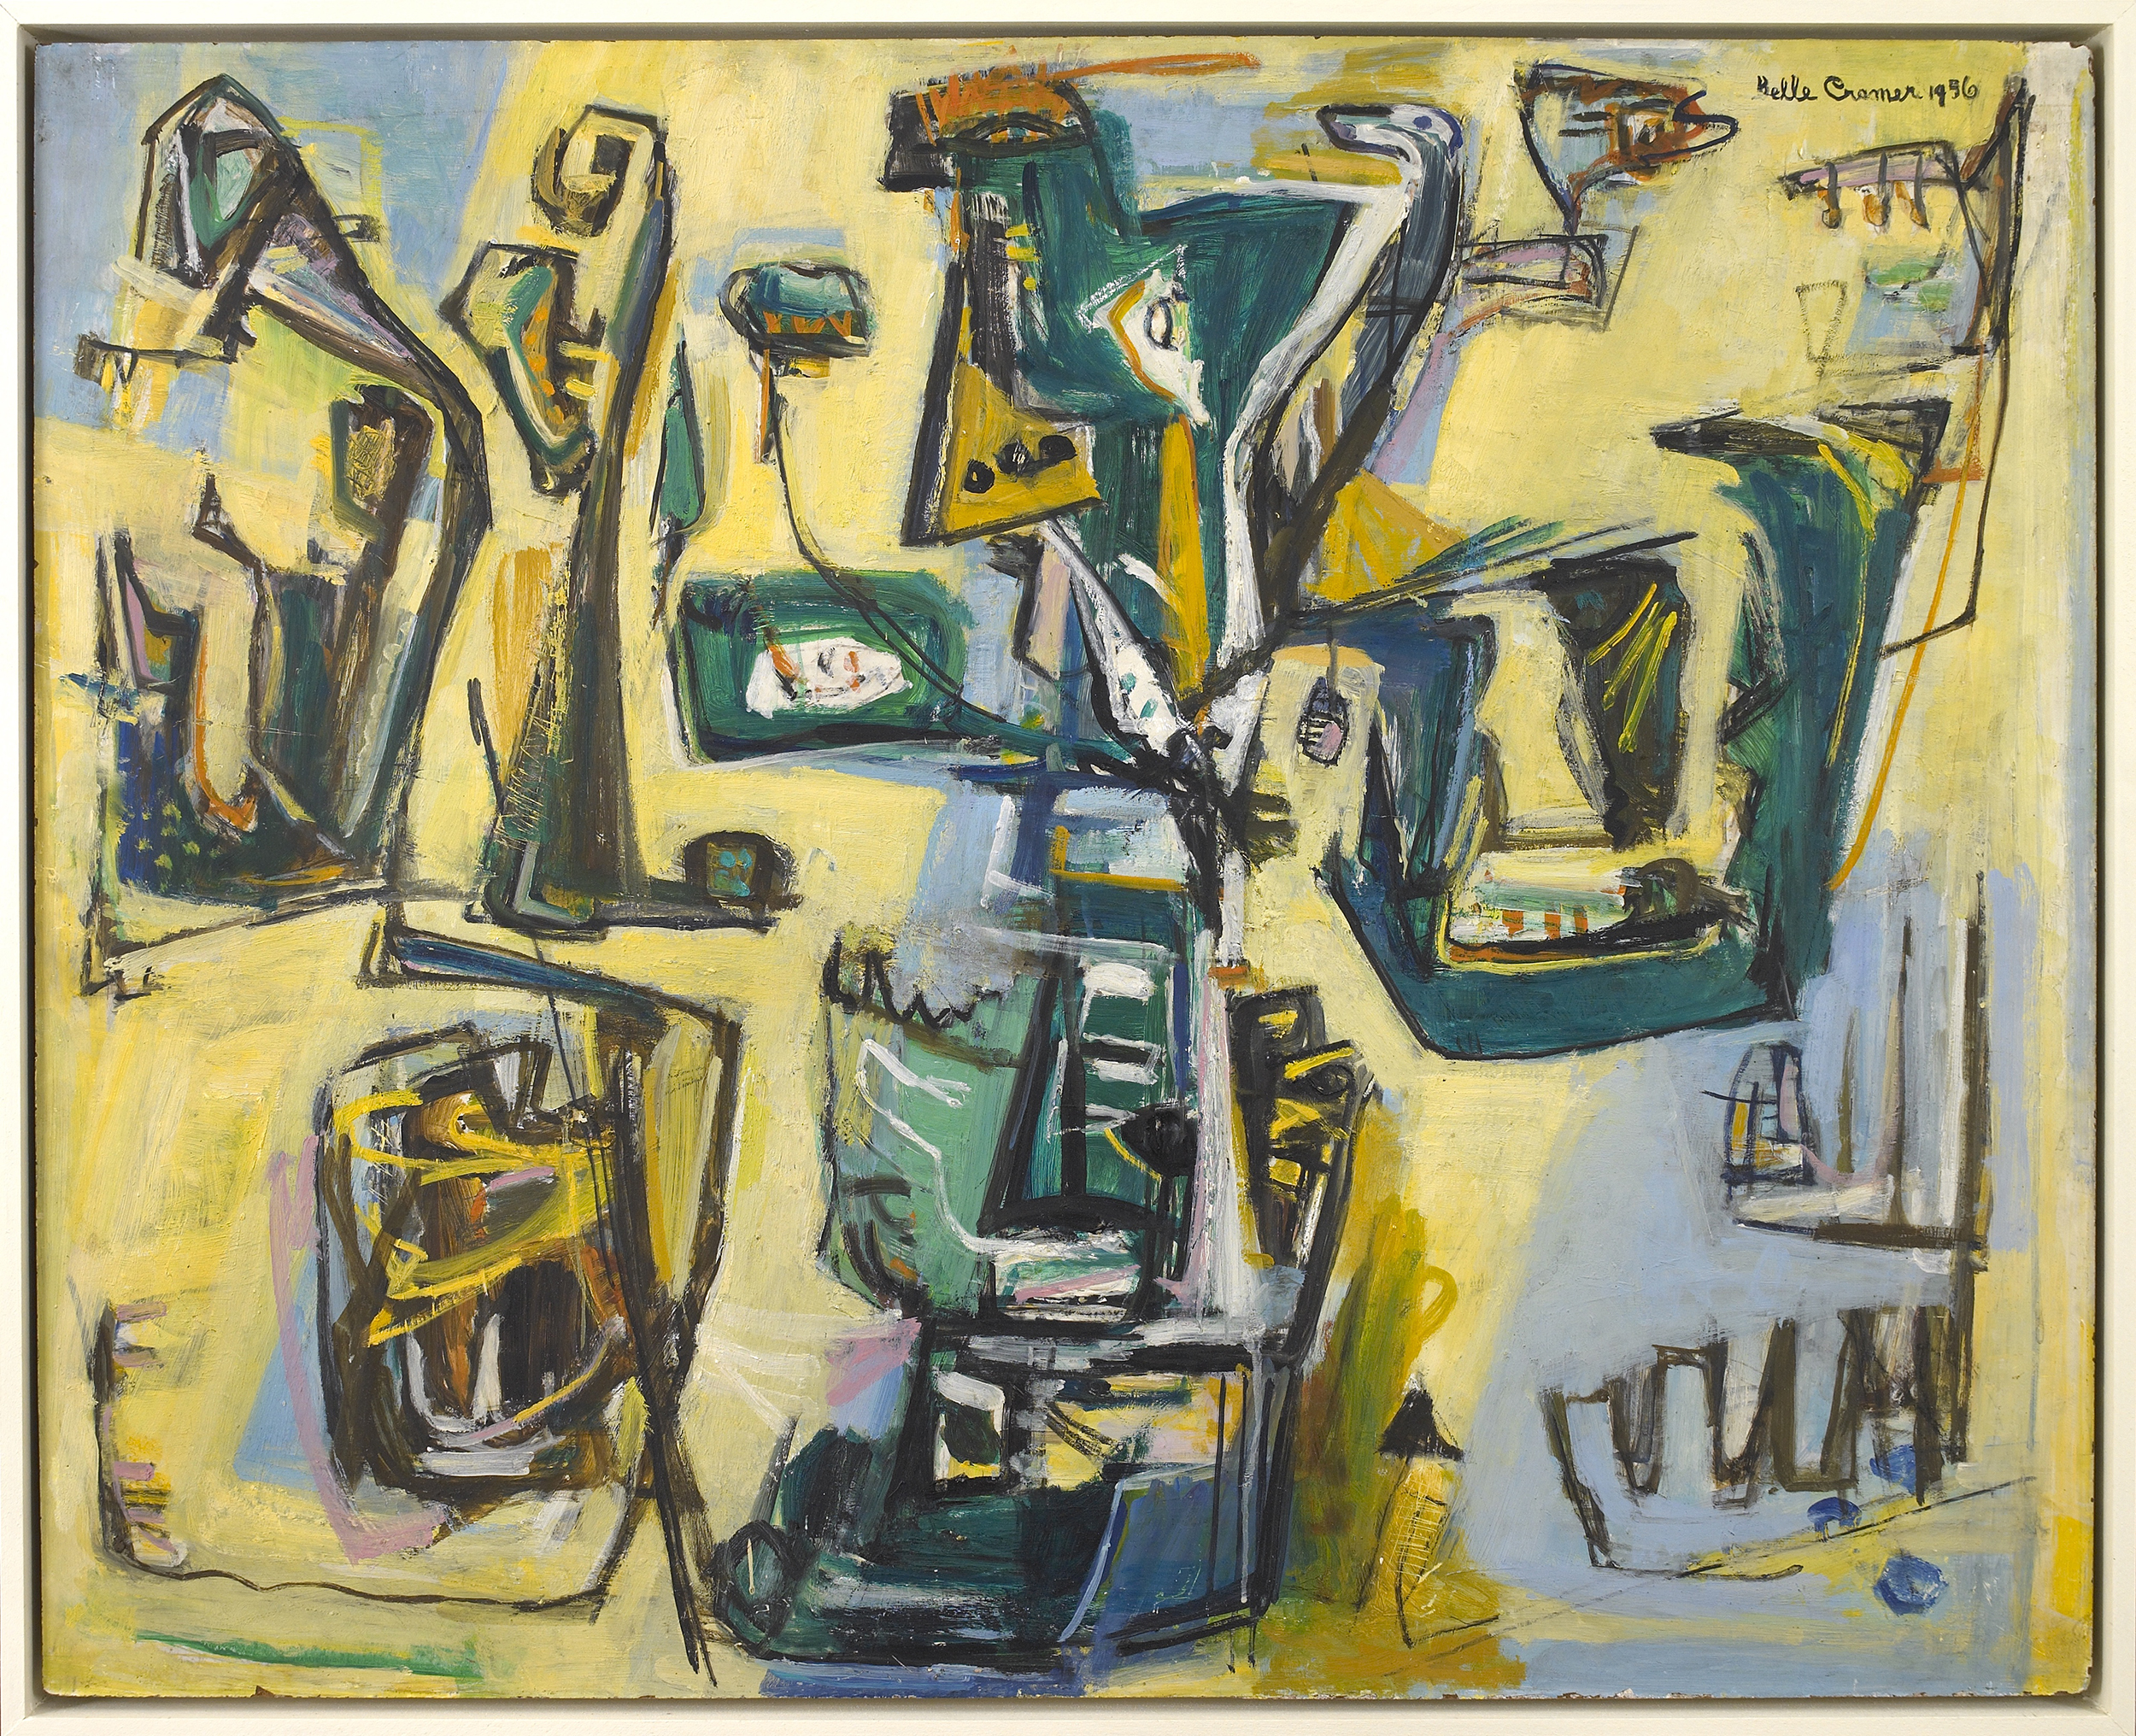 Abstract Composition,   1956, Oil on masonite, 32 x 40 inches